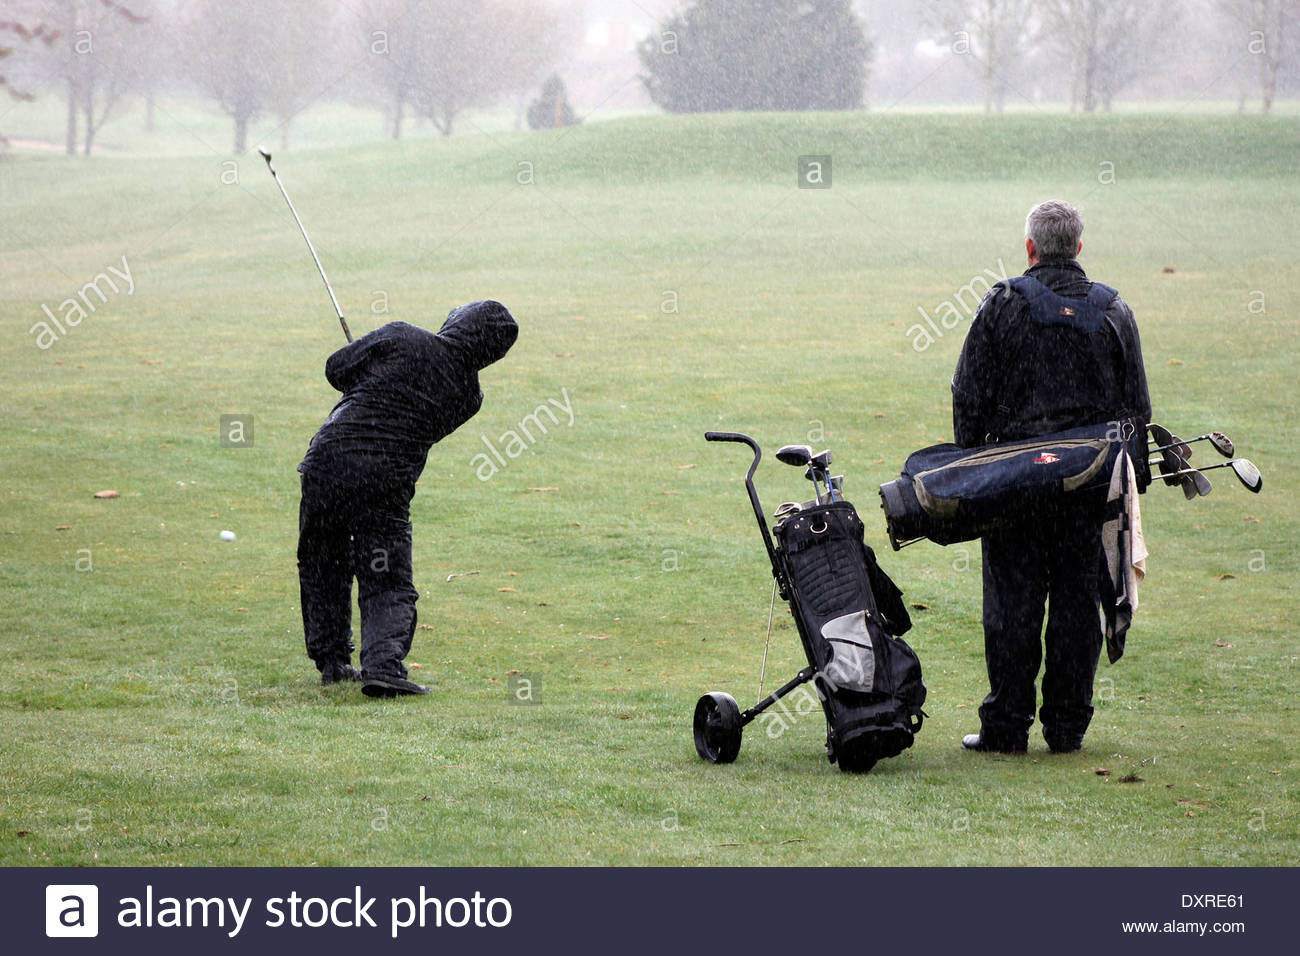 Playing a round of golf in the rain, in Gloucestershire, UK. - Stock Image